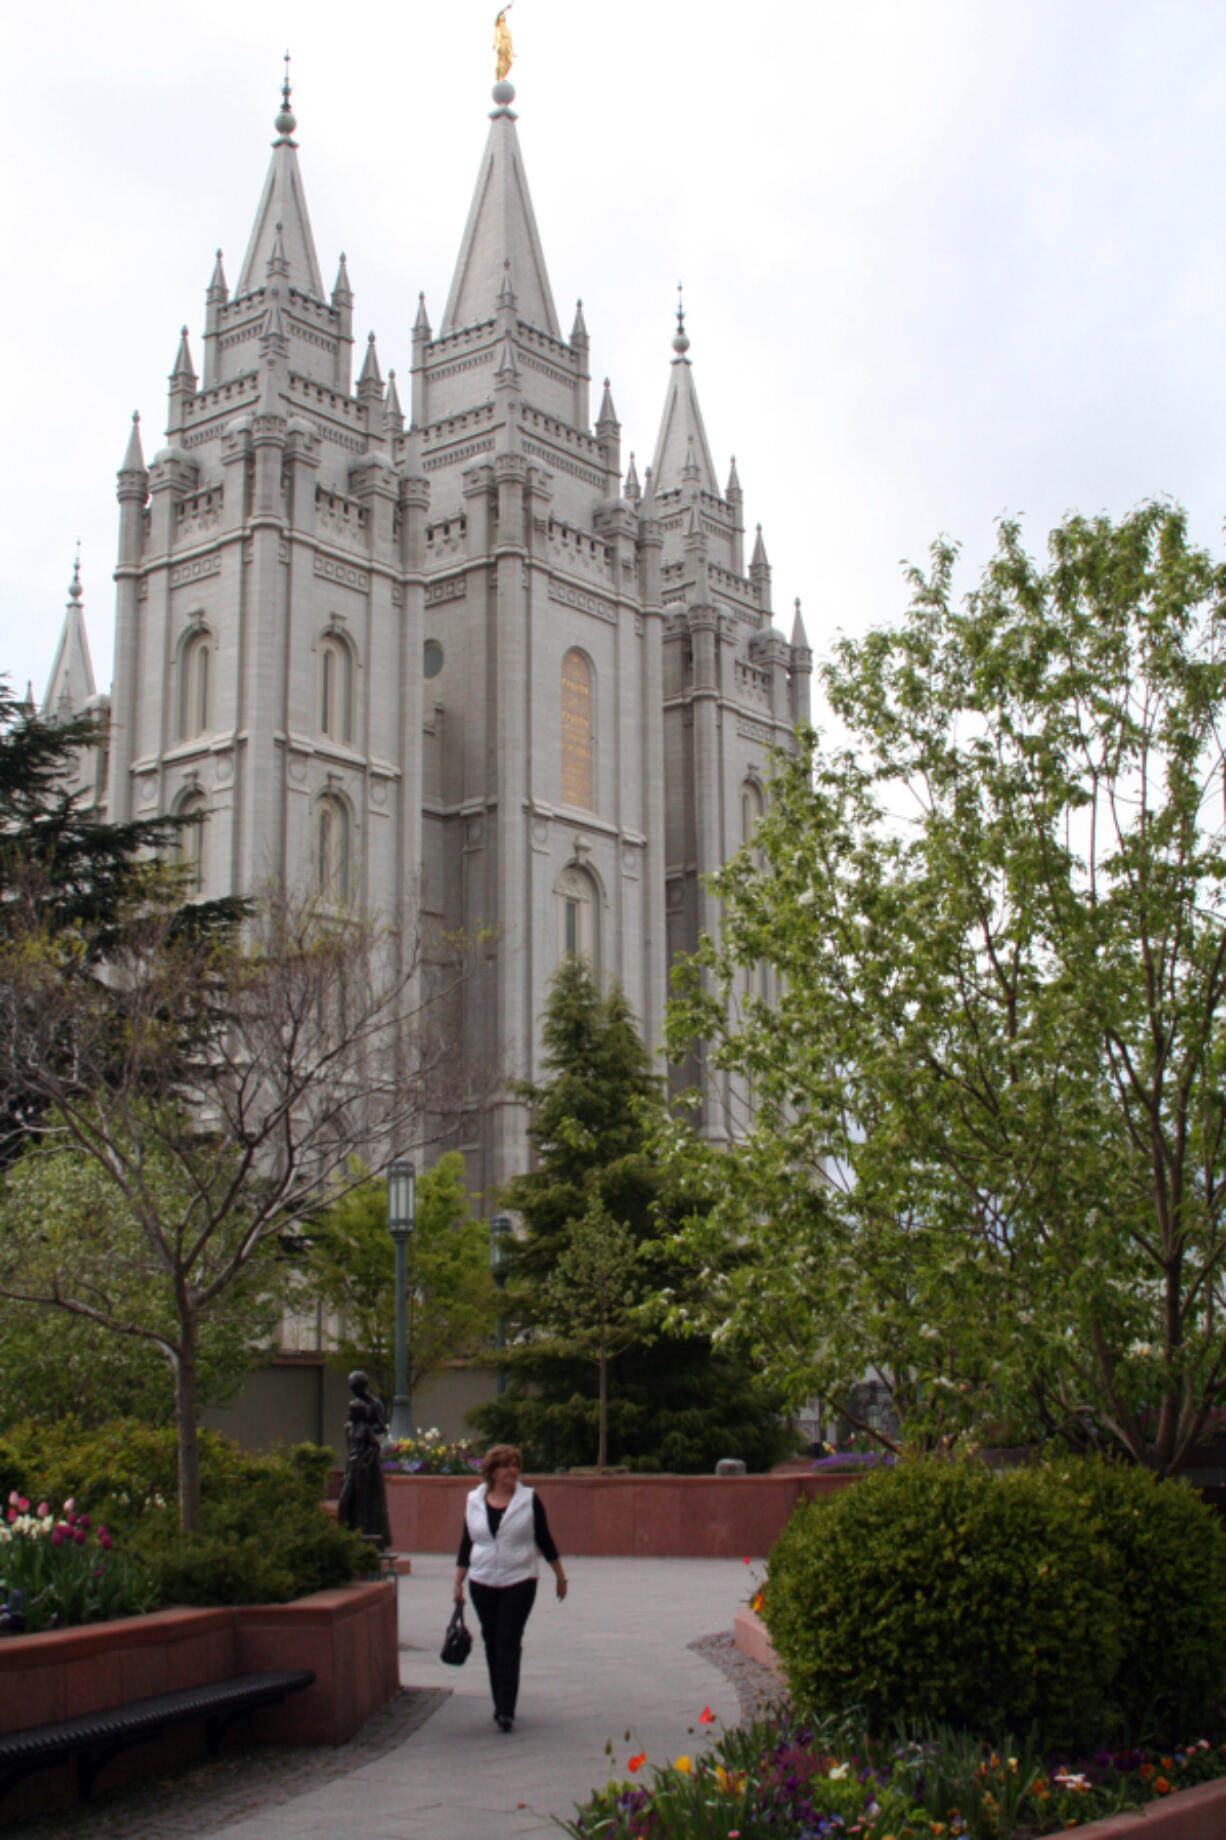 Temple Square, the headquarters of the Church of Jesus Christ of Latter-day Saints, is a central sight in downtown Salt Lake City, Utah. Leaders of the Church of Jesus Christ of Latter-day Saints have ordered the use of face masks in its temples worldwide to fight COVID-19.